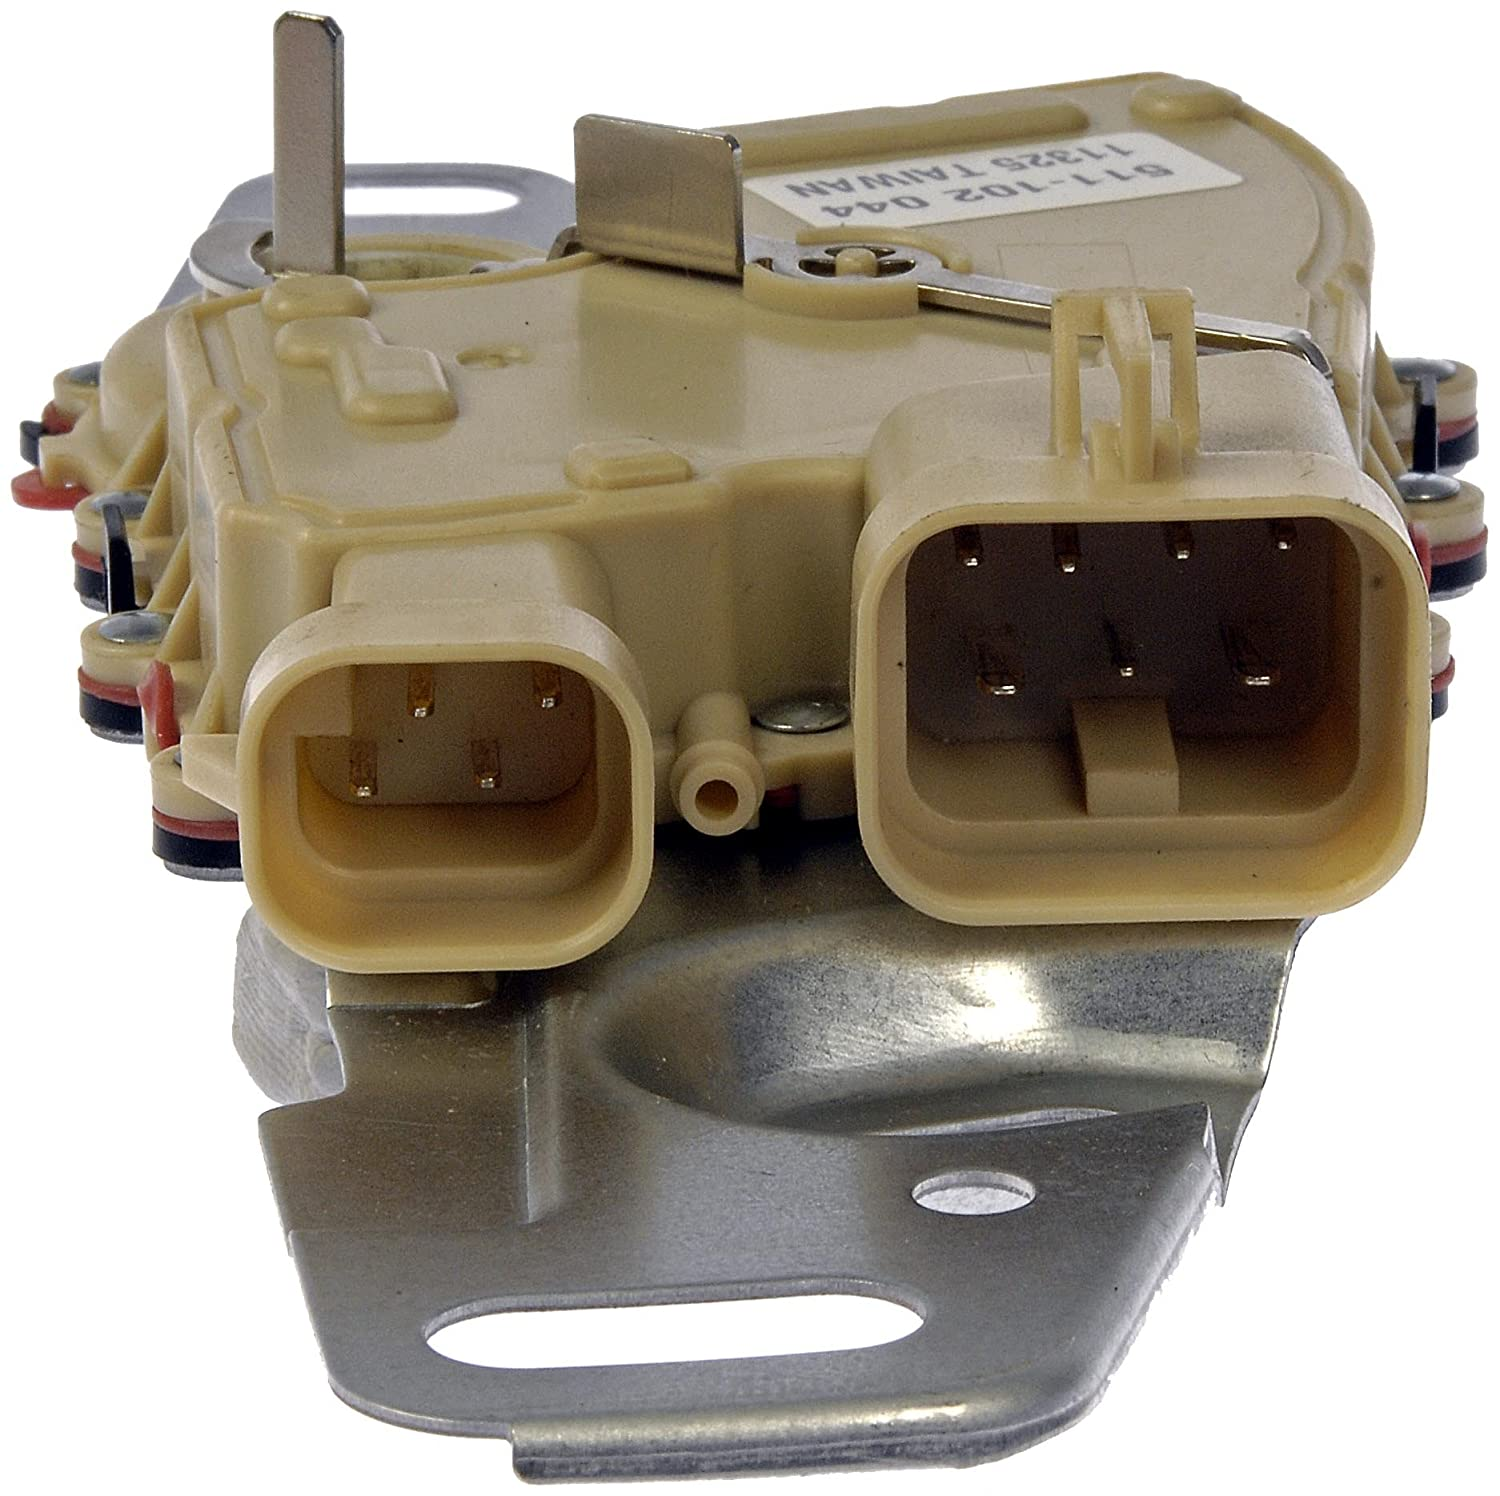 81OfdmyeHRL._SL1500_ amazon com dorman 511 102 transmission range sensor automotive  at readyjetset.co